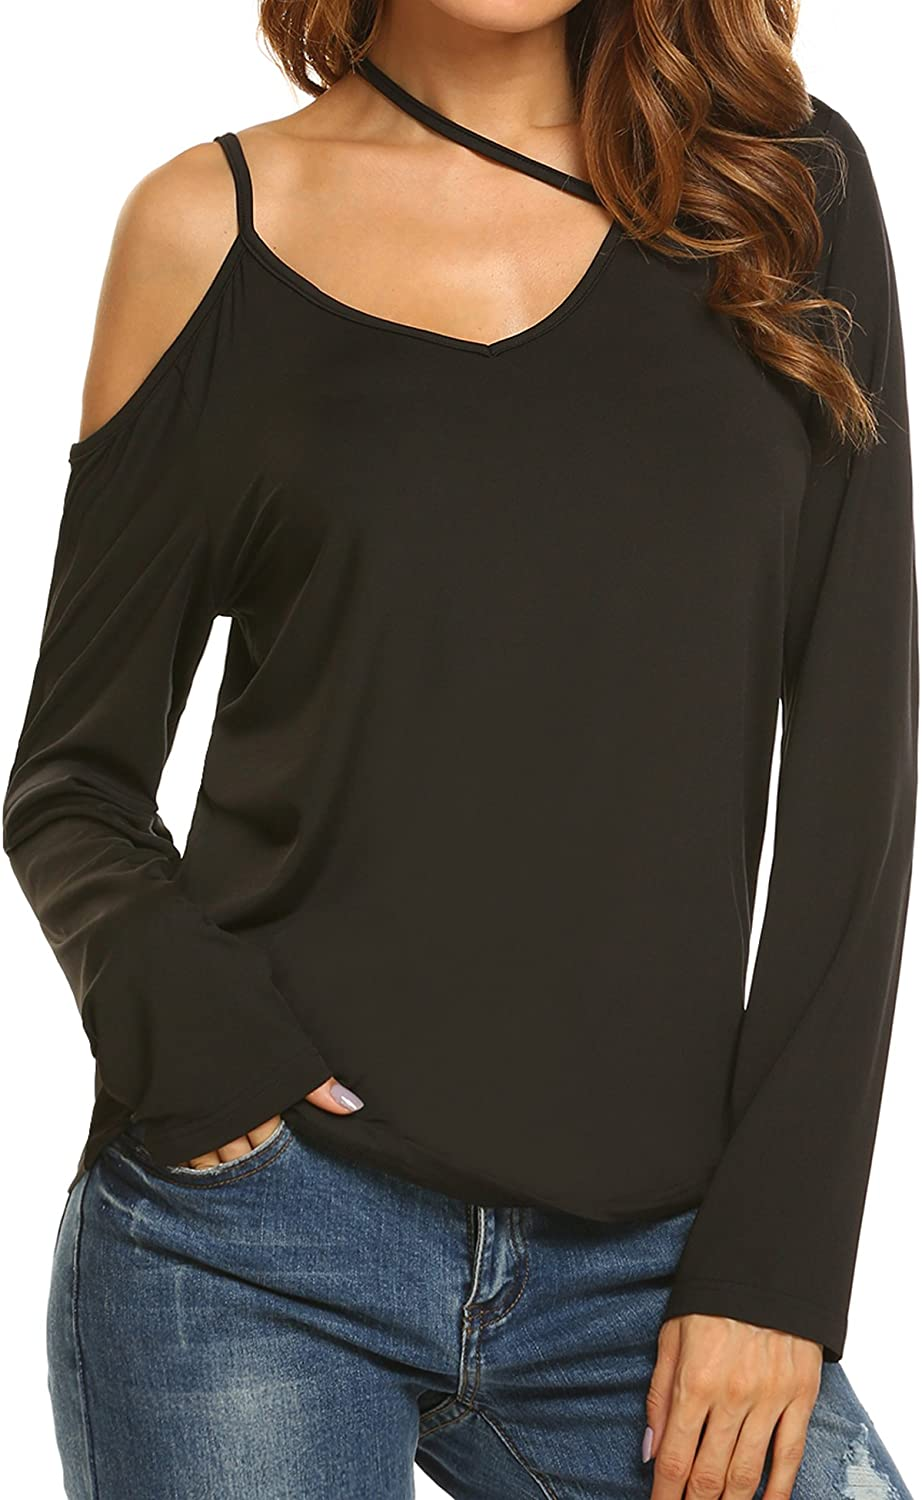 Beautyuu Women Casual Cold Shoulder Solid Slim Sexy Blouse TShirt Tops